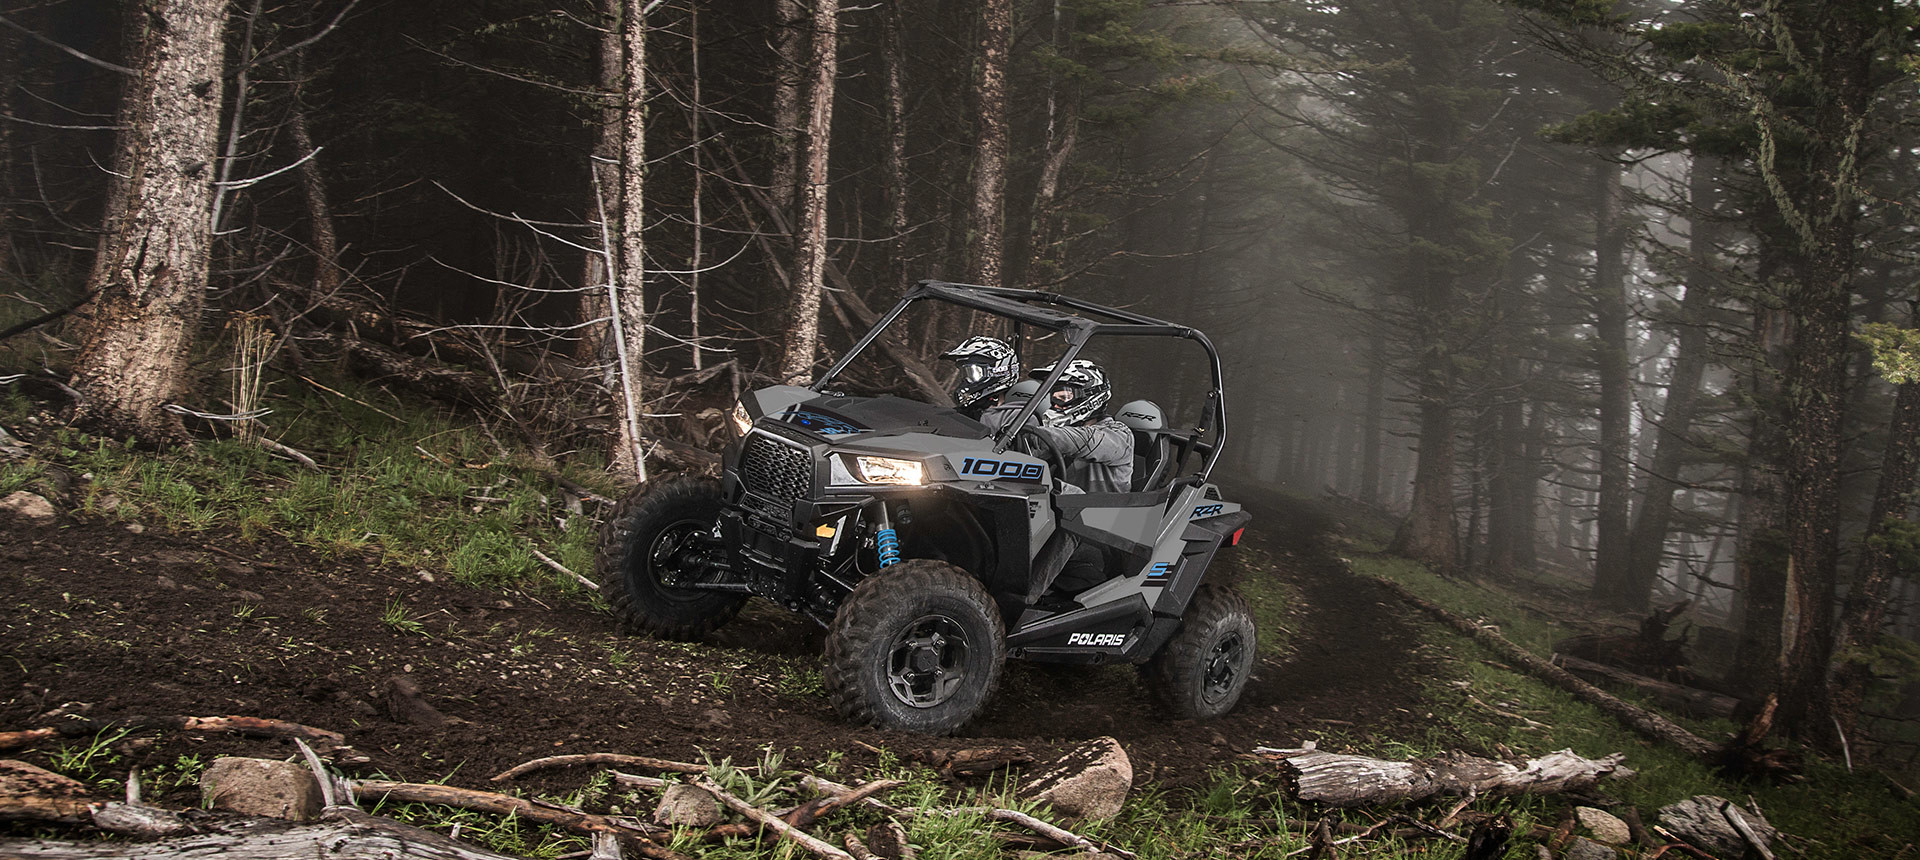 2020 RZR<sup>®</sup> Trail S 1000 Instagram image 4